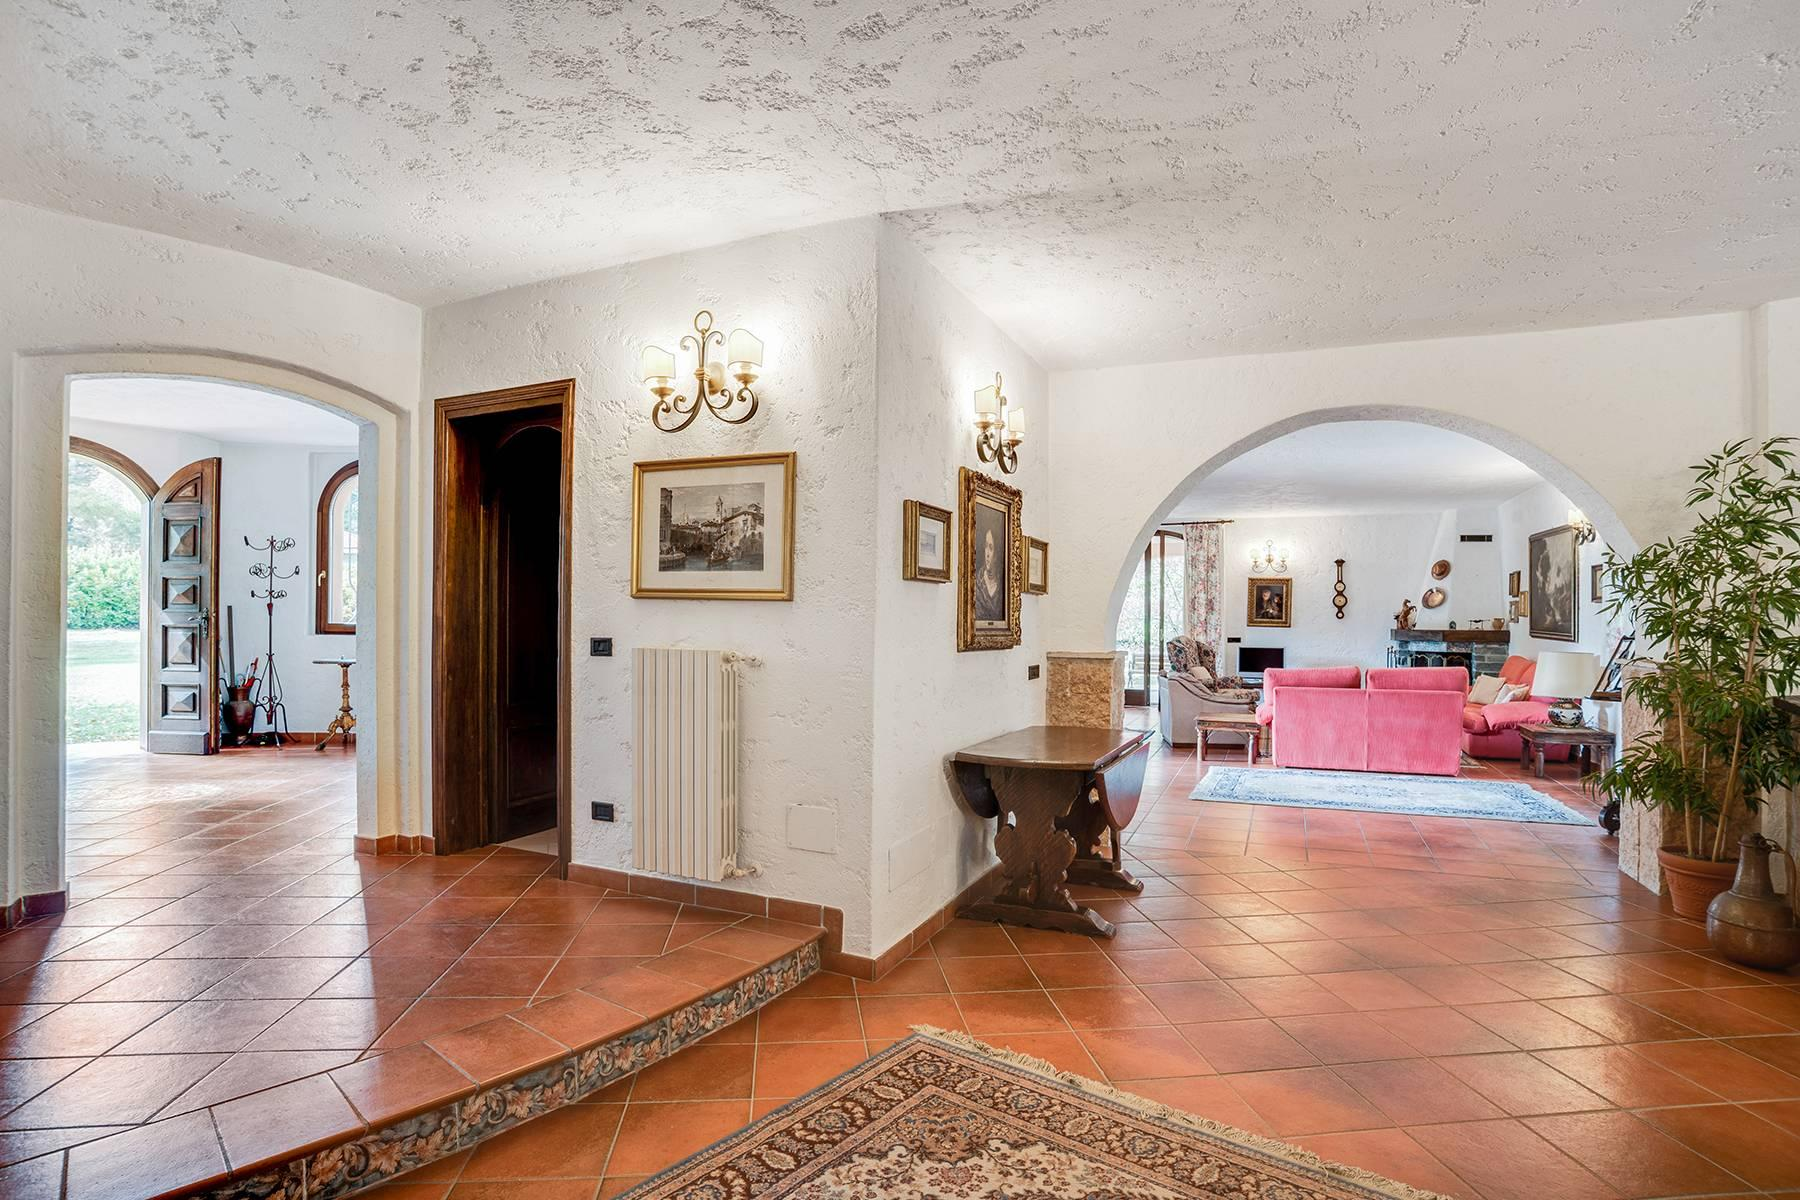 Prestigious villa with private park located within the residential complex of